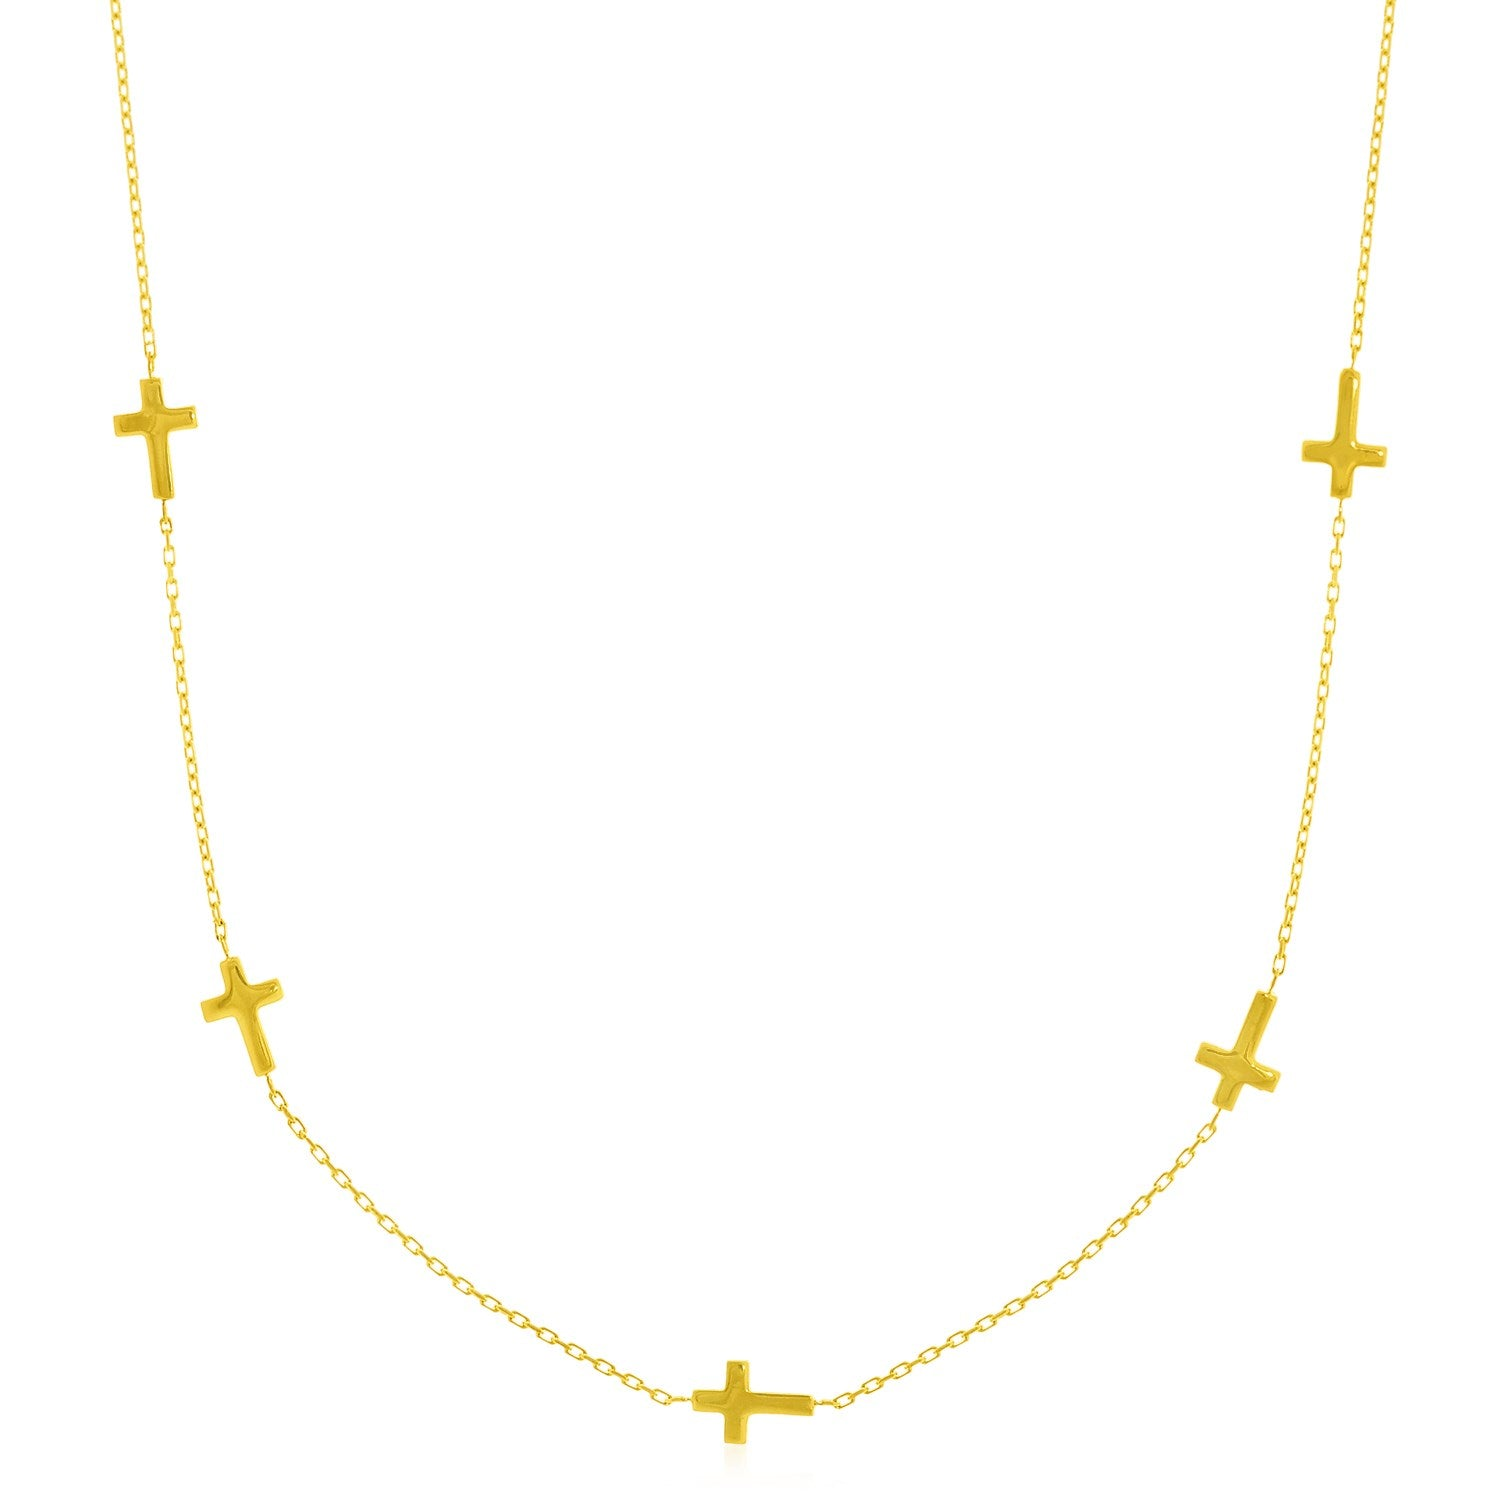 14K Yellow Gold Chain Necklace with Cross Stations